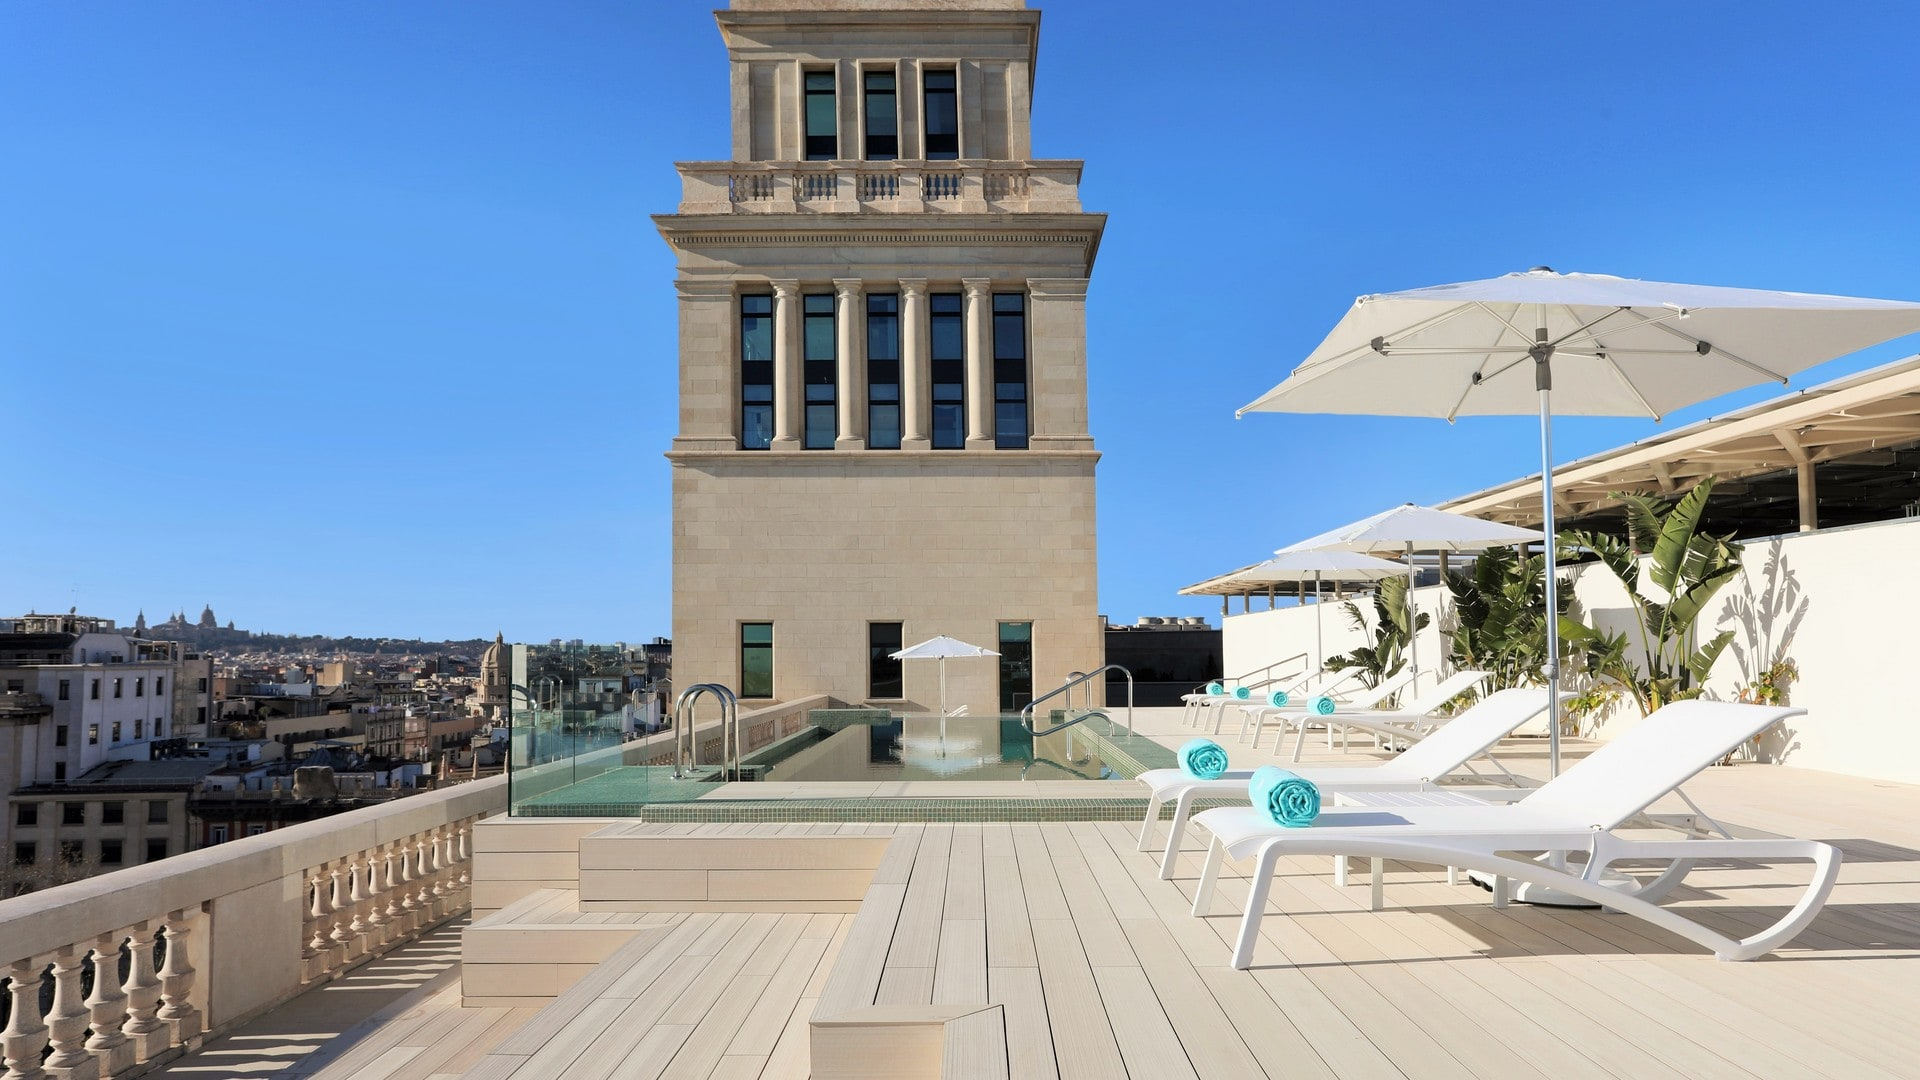 This hotel's rooftop is great for relaxing after a long day of seeing Barcelona's many sights. Image credit:    Iberostar Paseo de Gracia   /Fair Use